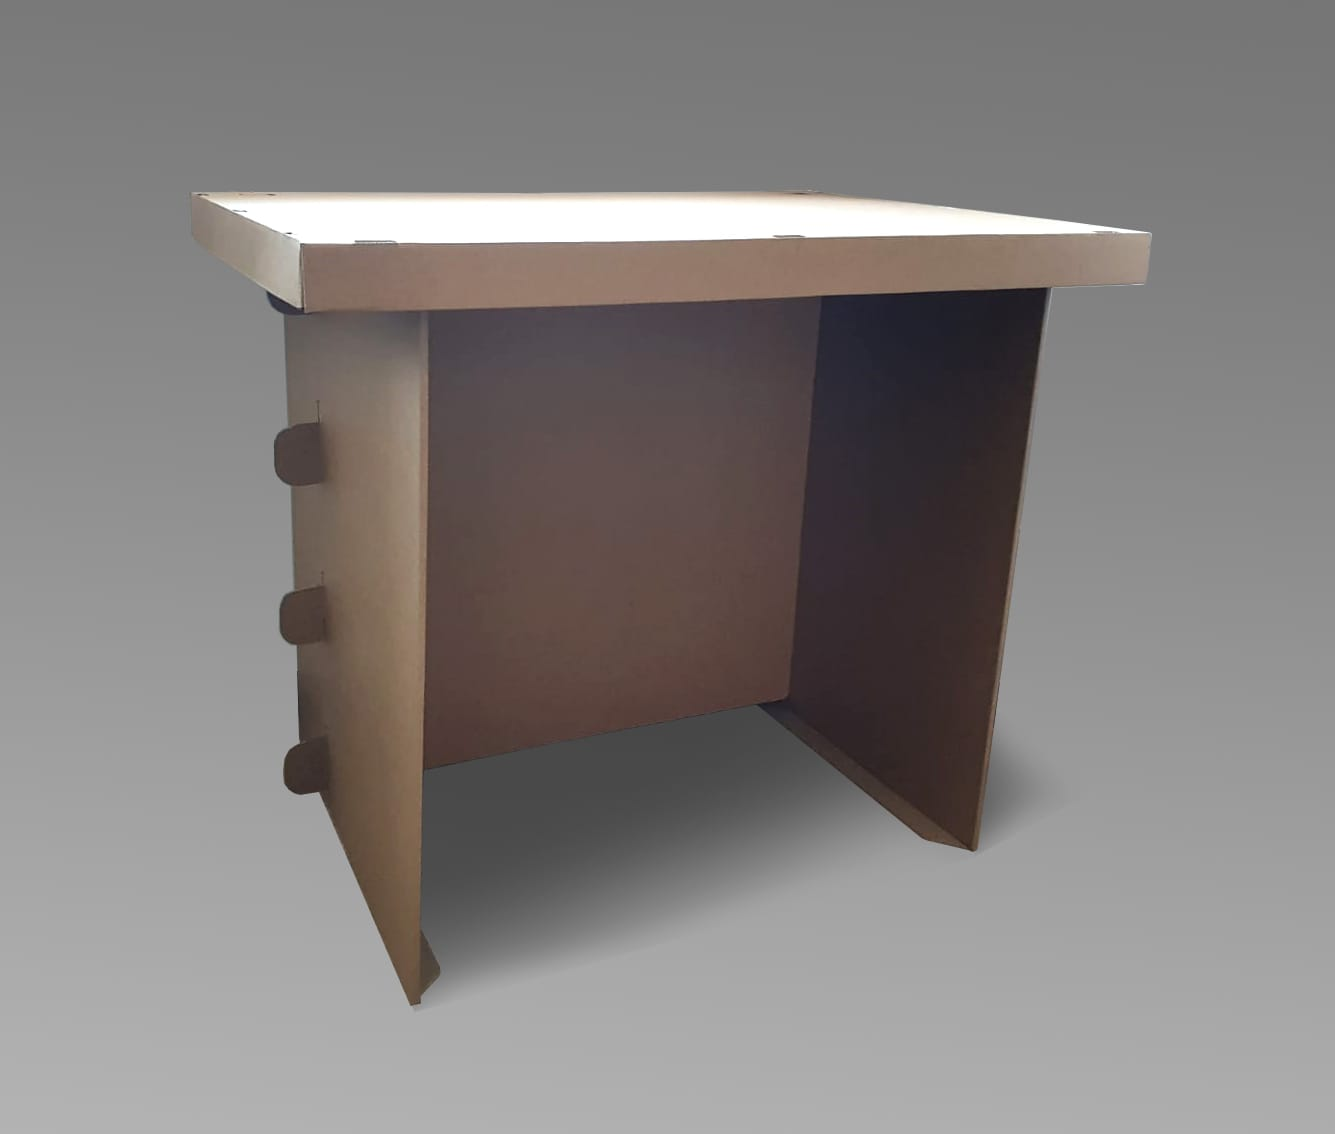 Cardboard Desk UK Manufacturer and Supplier, low cost